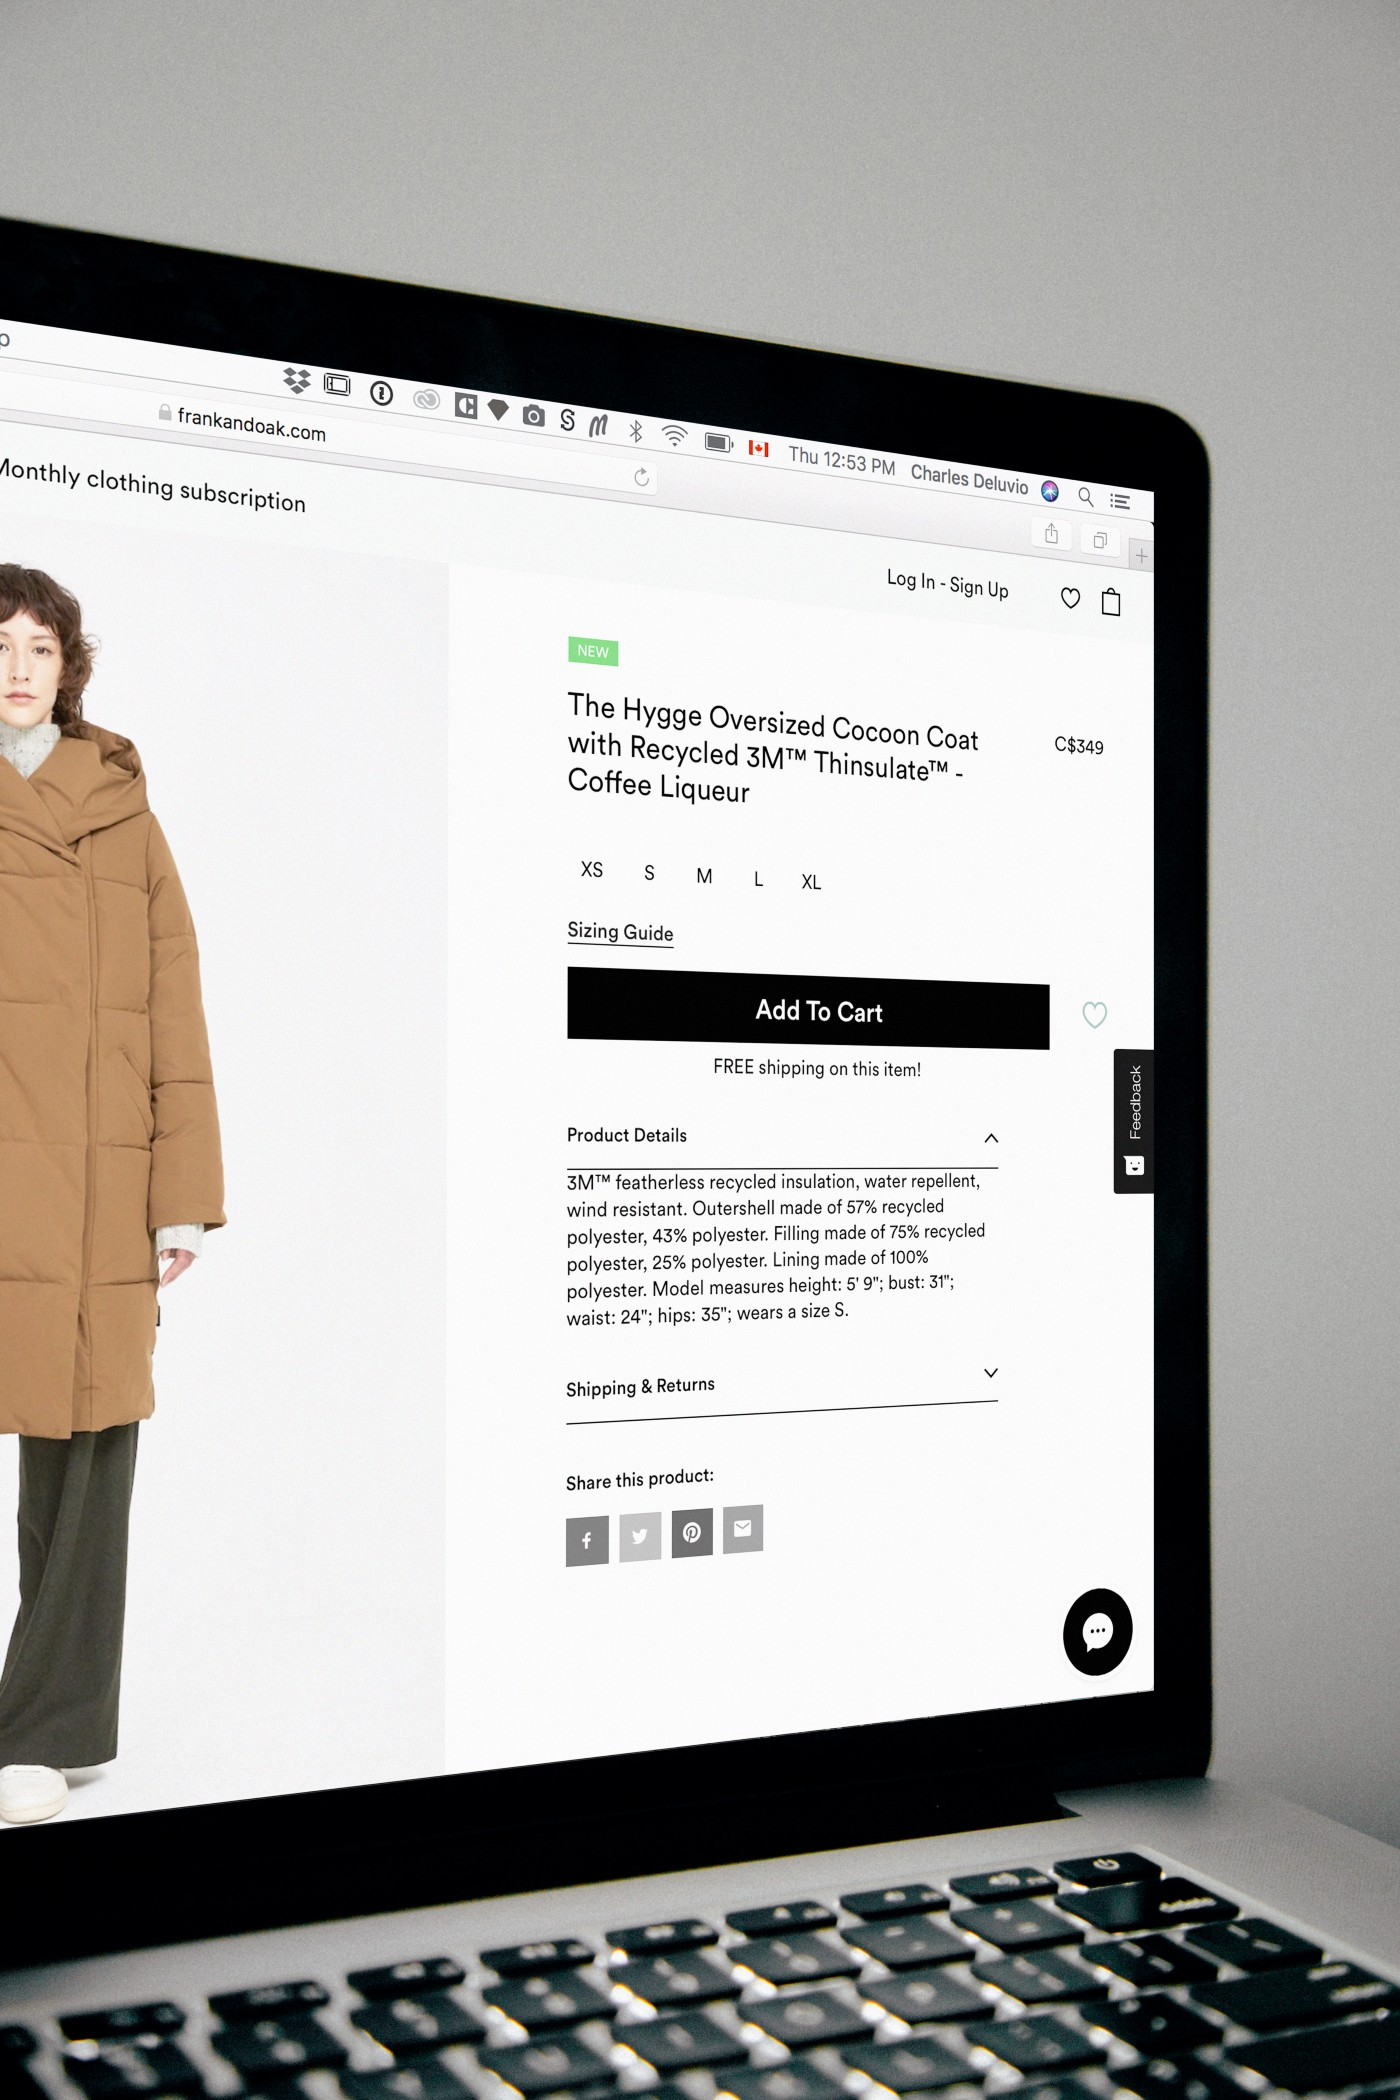 Sales page for a cocoon coat.